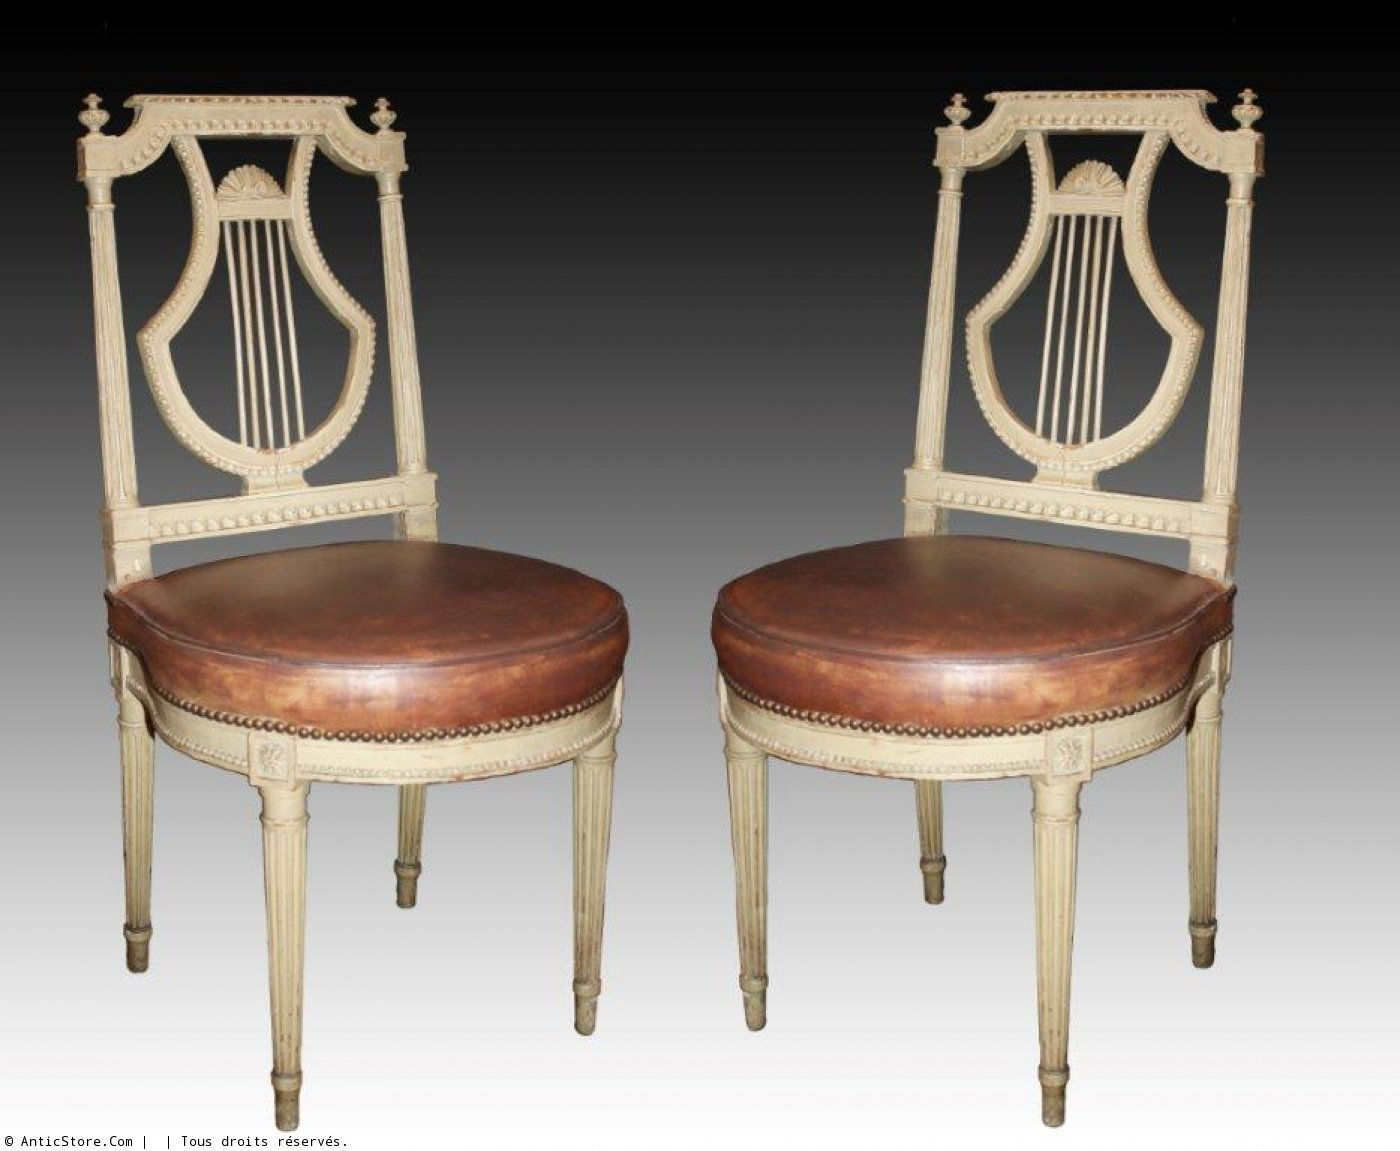 a fine louis xvi mobilier de salle manger. Black Bedroom Furniture Sets. Home Design Ideas